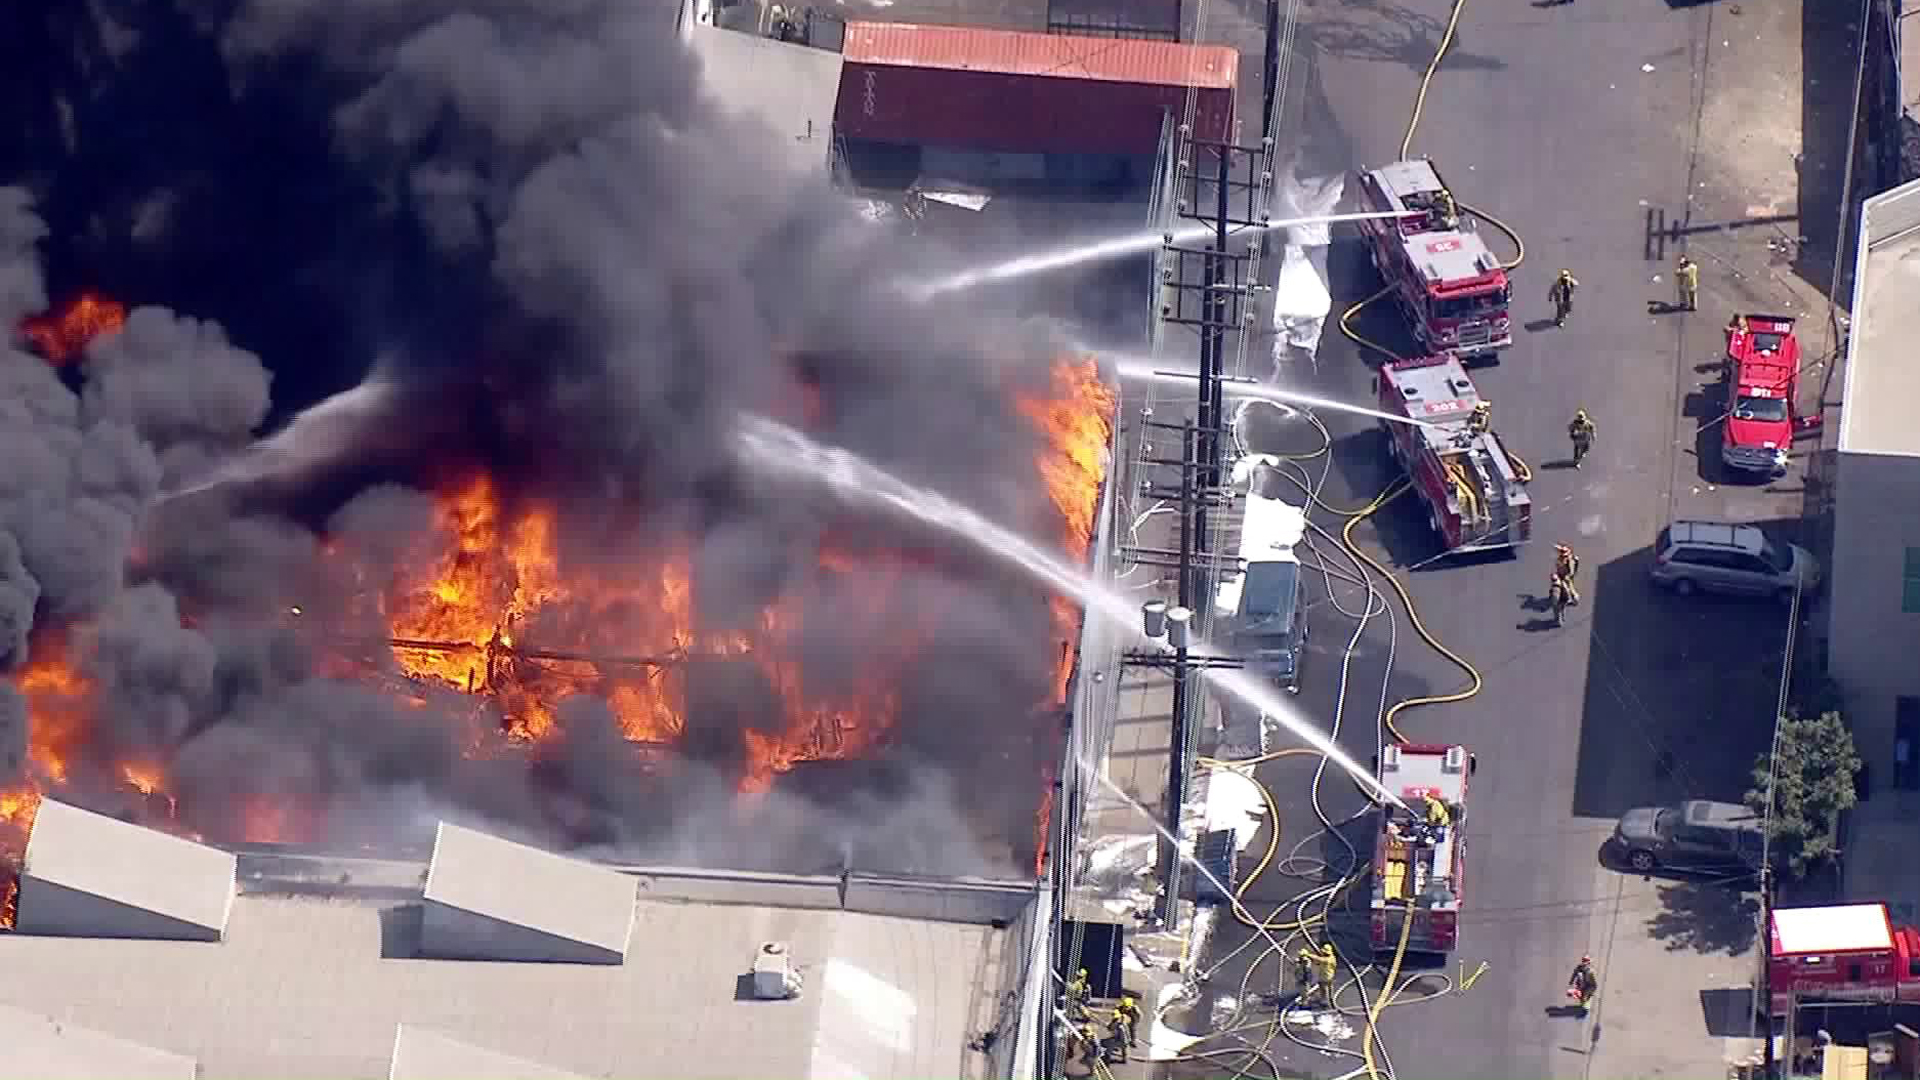 Firefighters battle a blaze at a commercial building in Boyle Heights on Sept. 19, 2018. (Credit: KTLA)